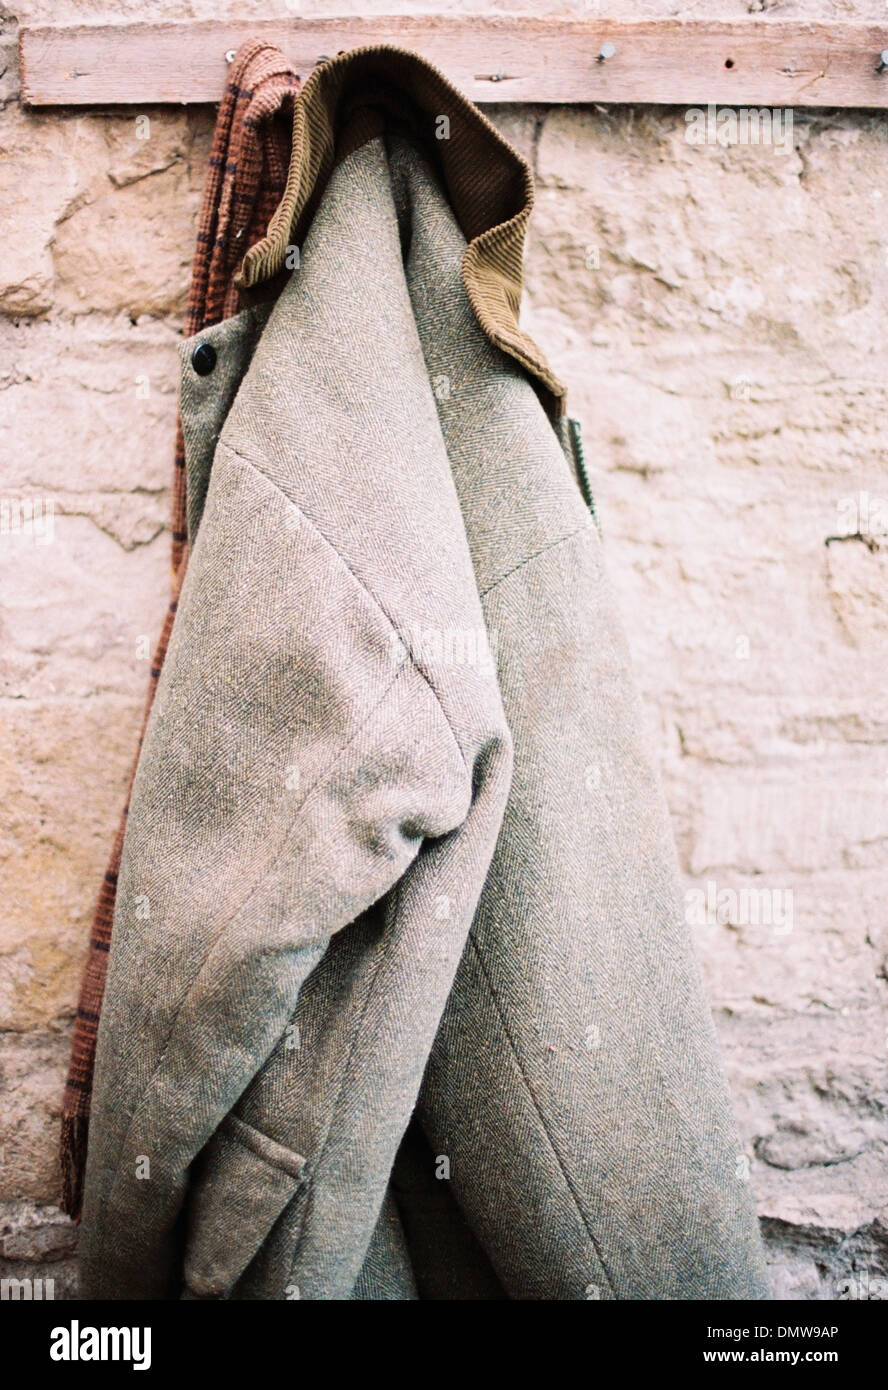 A traditional warm jacket with corduroy collar hanging from a pen on a stone wall. - Stock Image